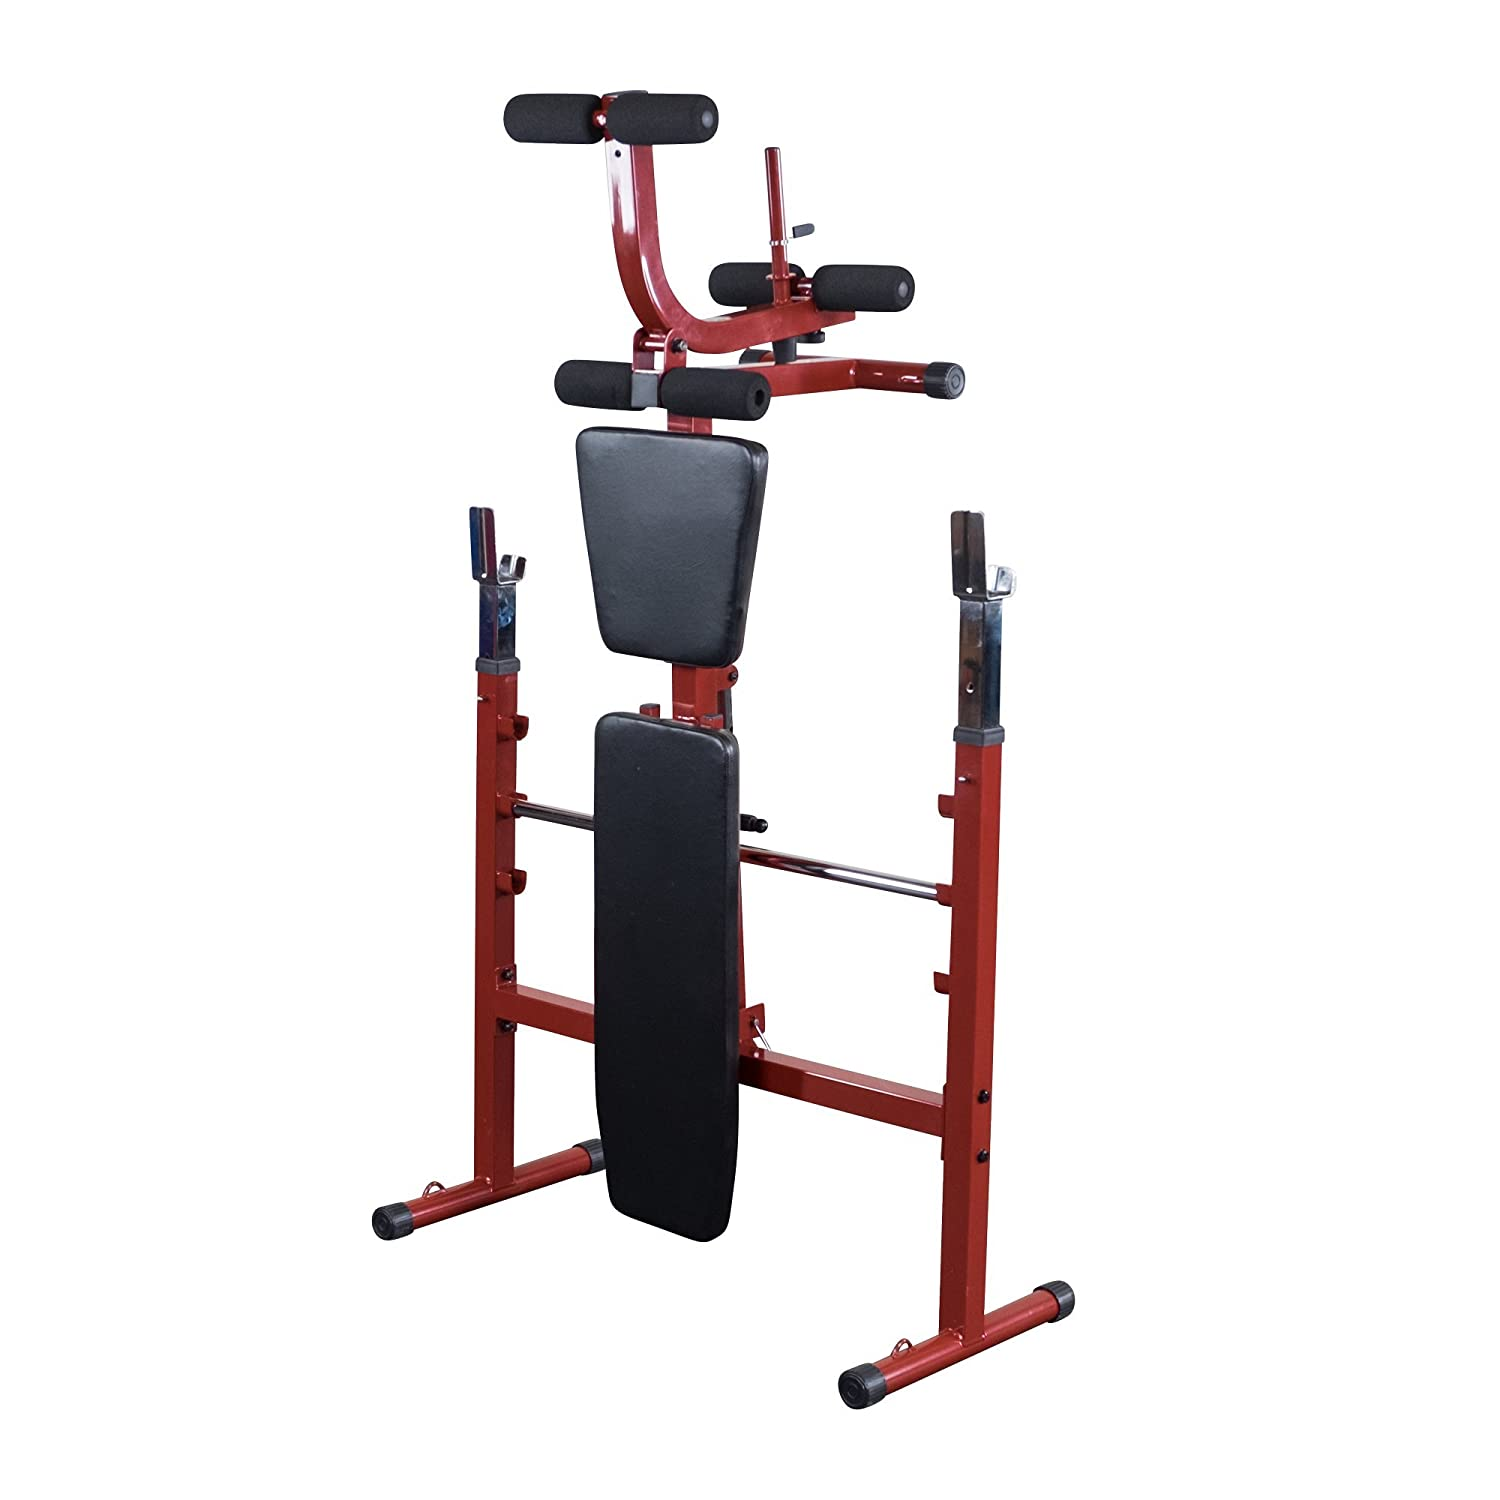 Amazon.com : best fitness bfob10 olympic bench : olympic weight